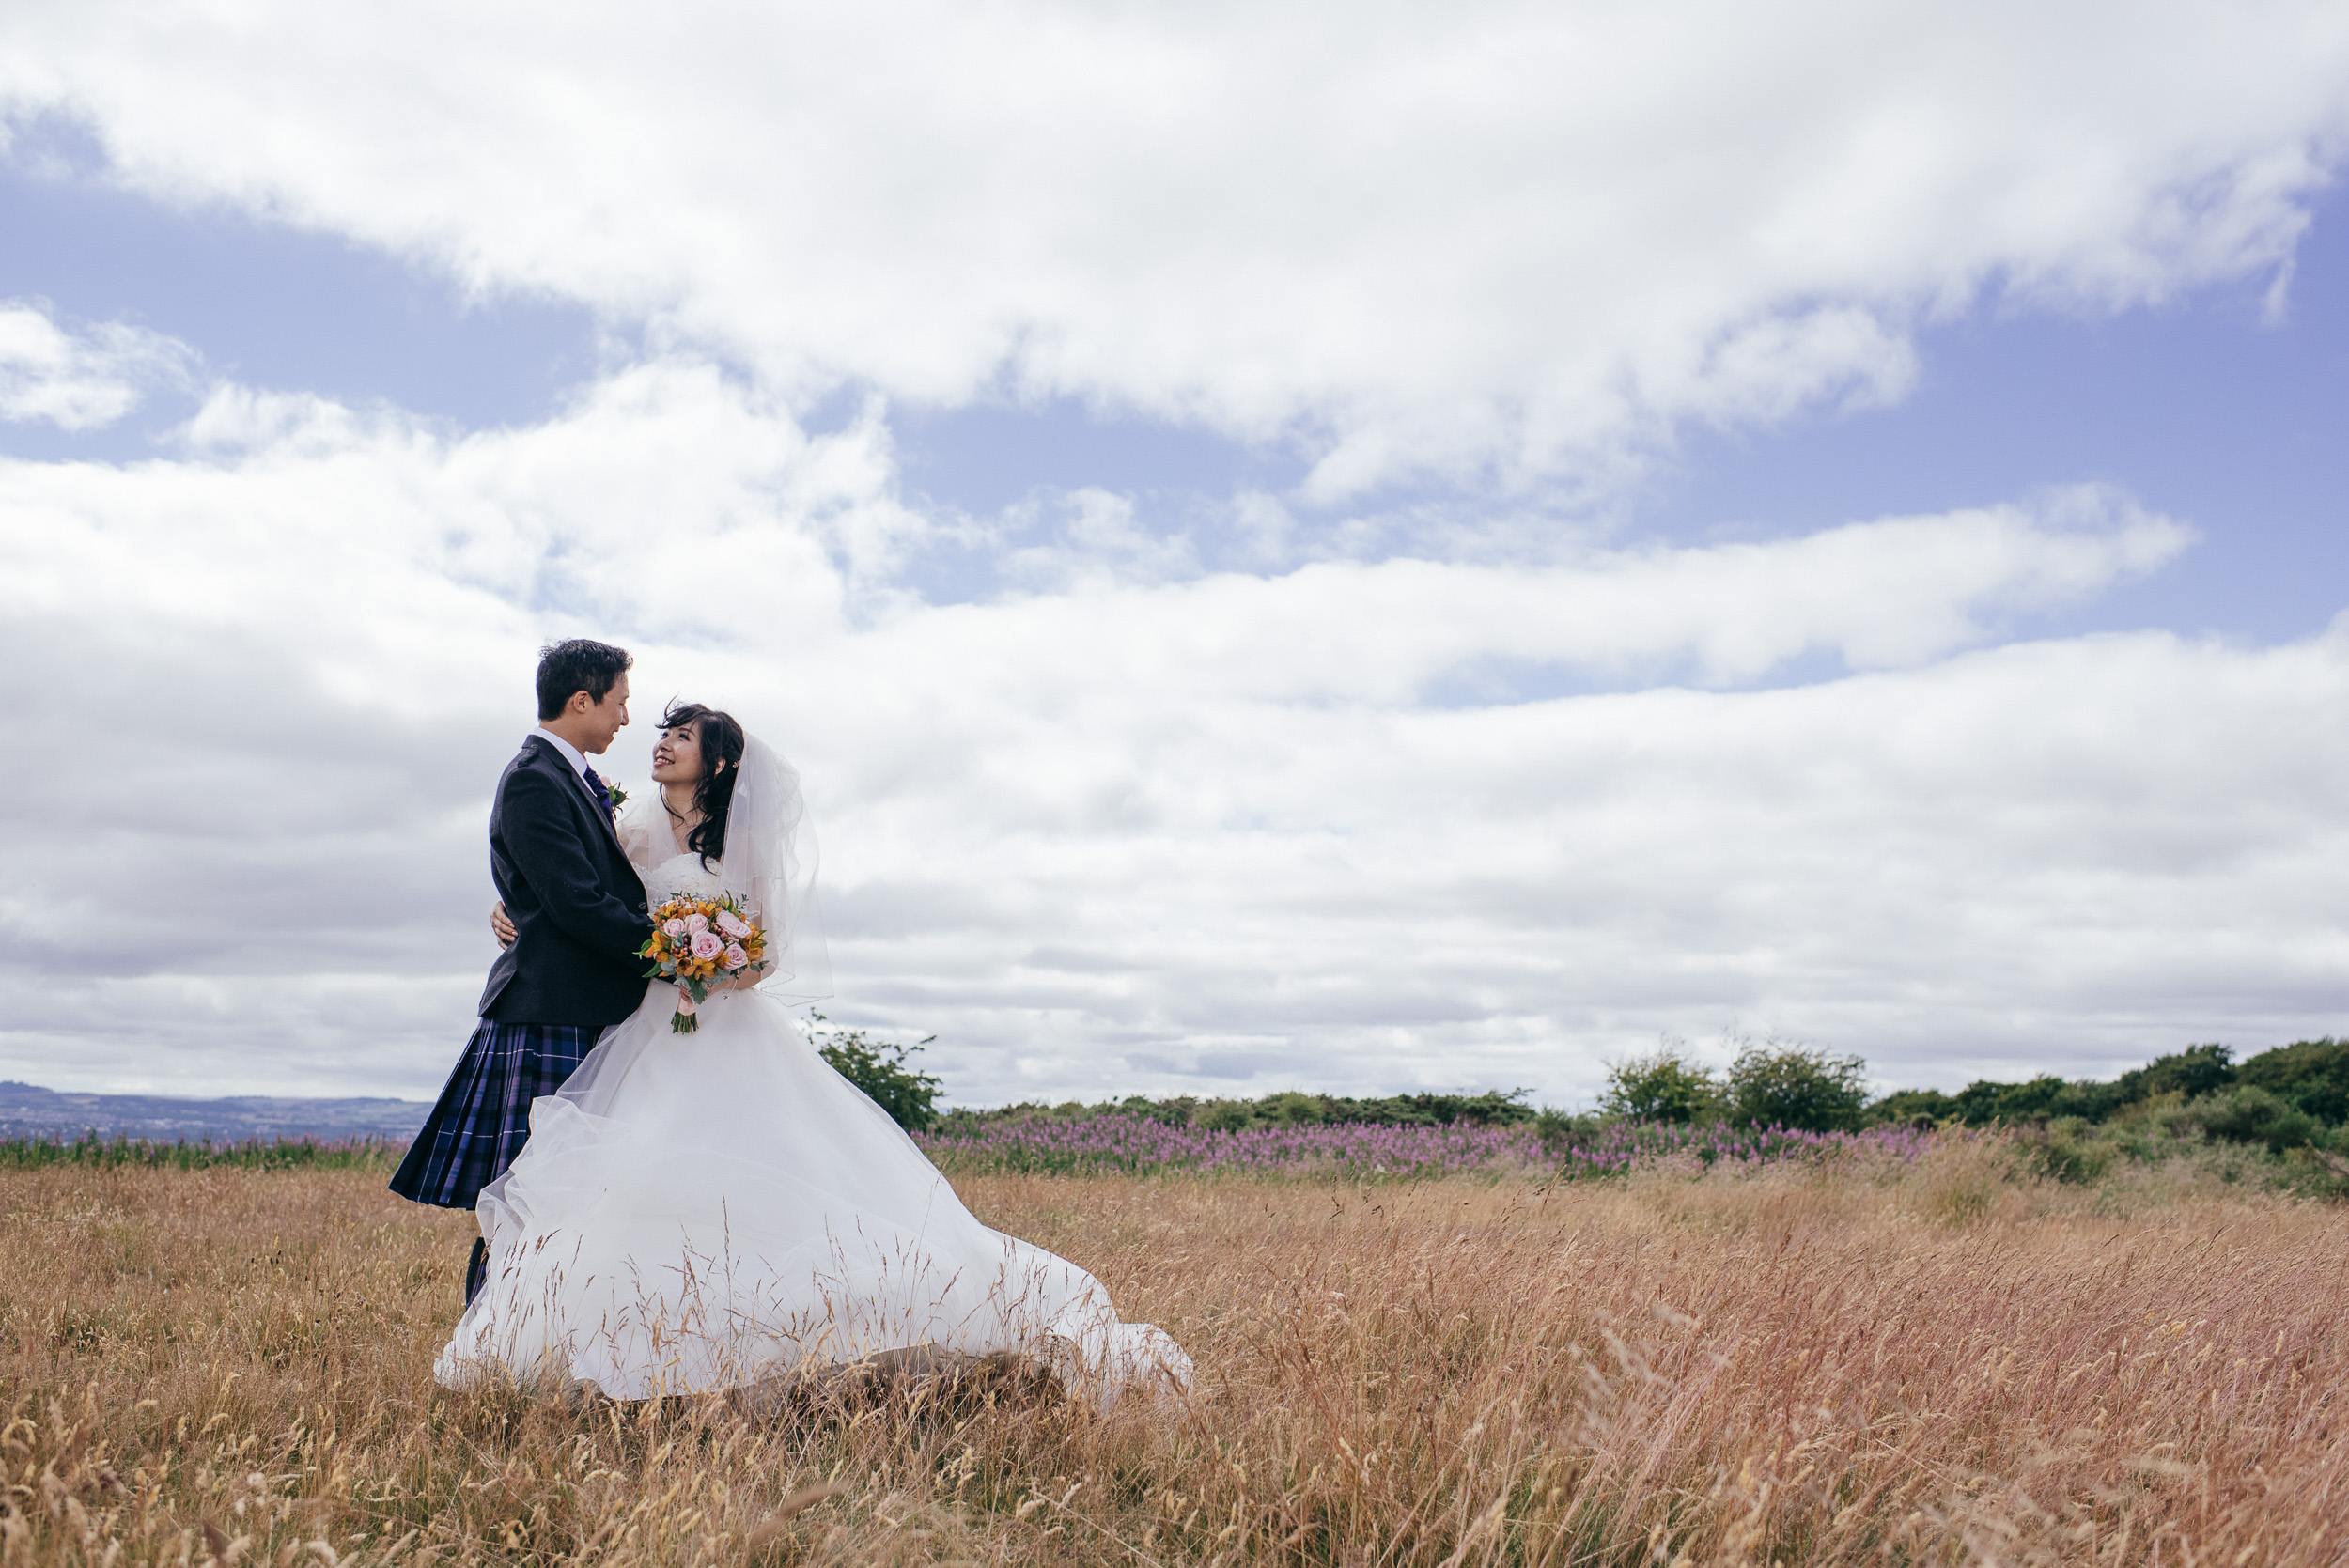 Chinese Scottish wedding in a field